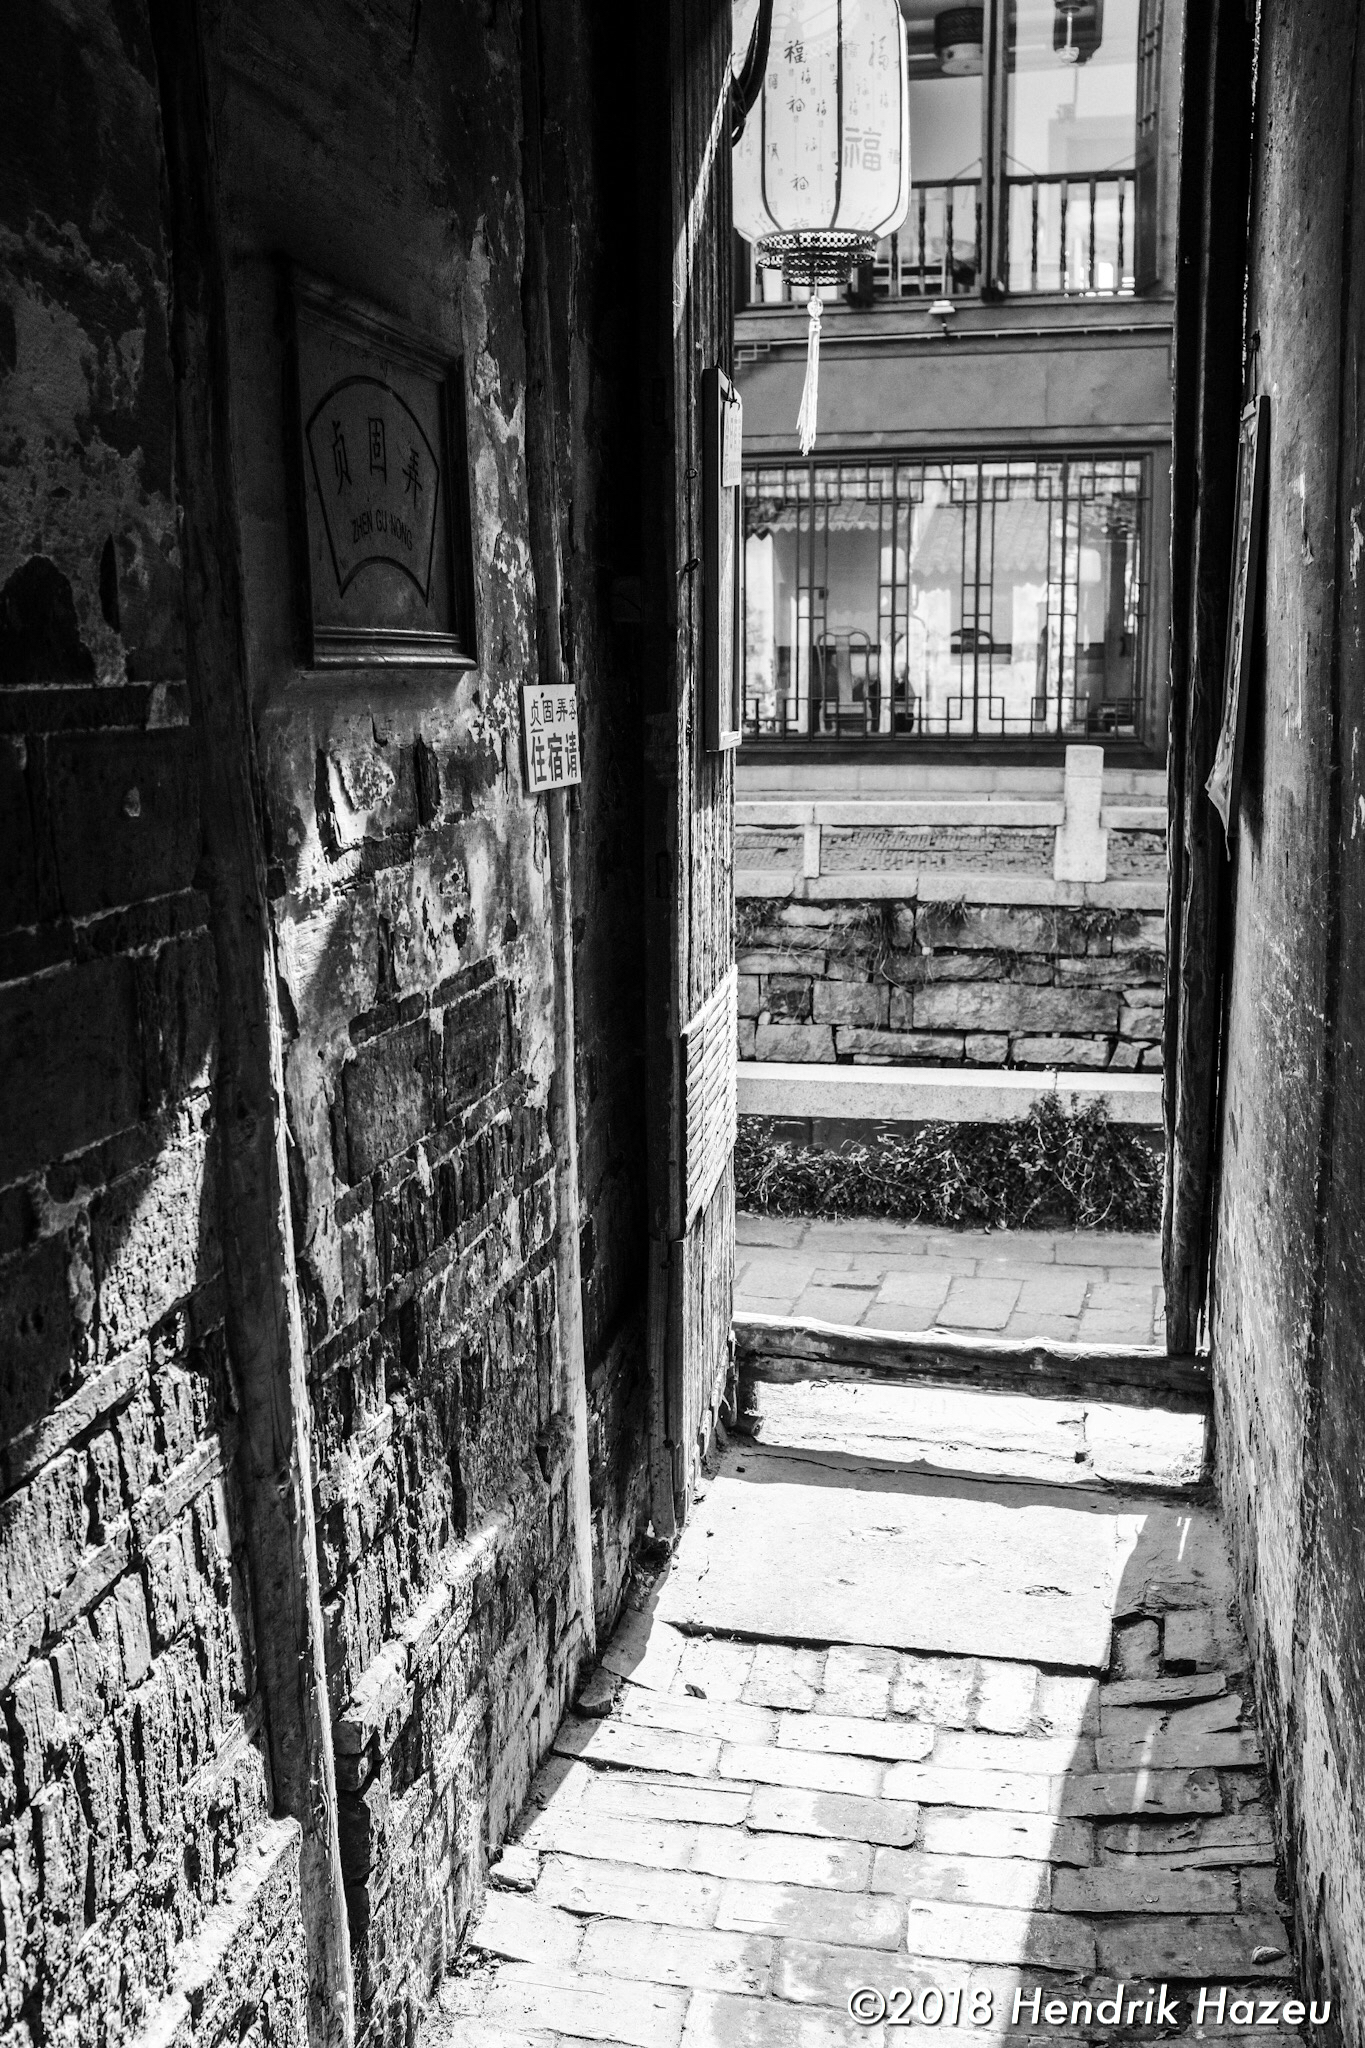 Chinese doorway,Fuji X100F, 23mm f/2 @f/5.6, 1/220sec ISO400 developed in LR CC mobile